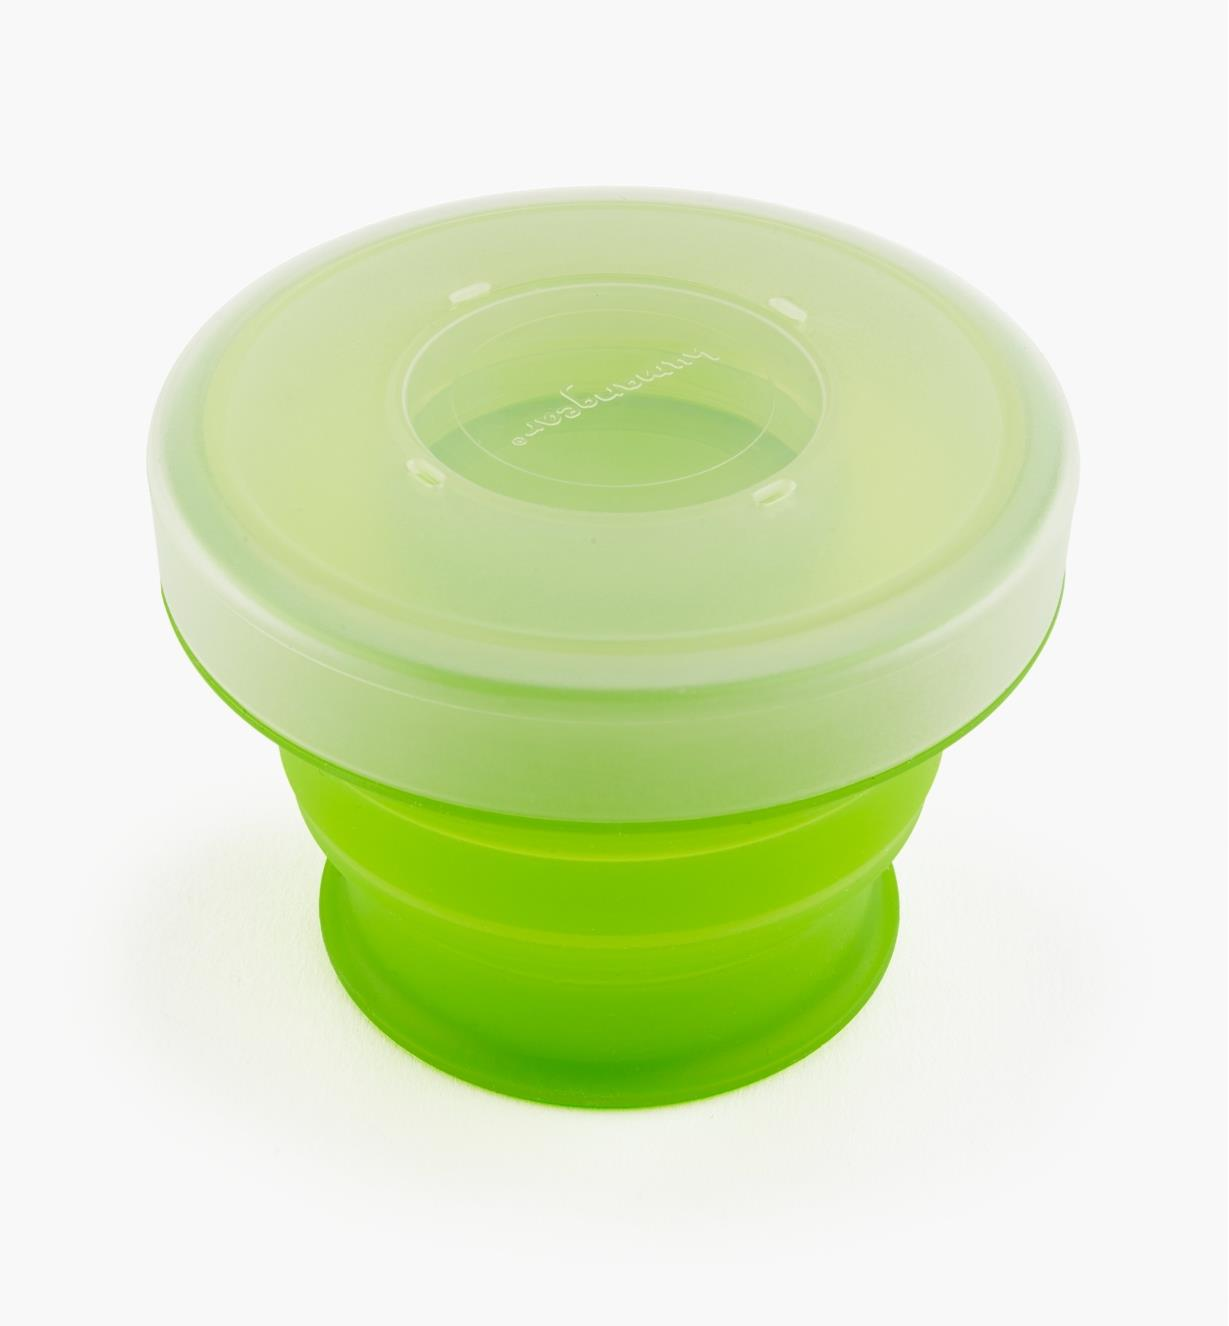 EV388 - Green Collapsible Cup